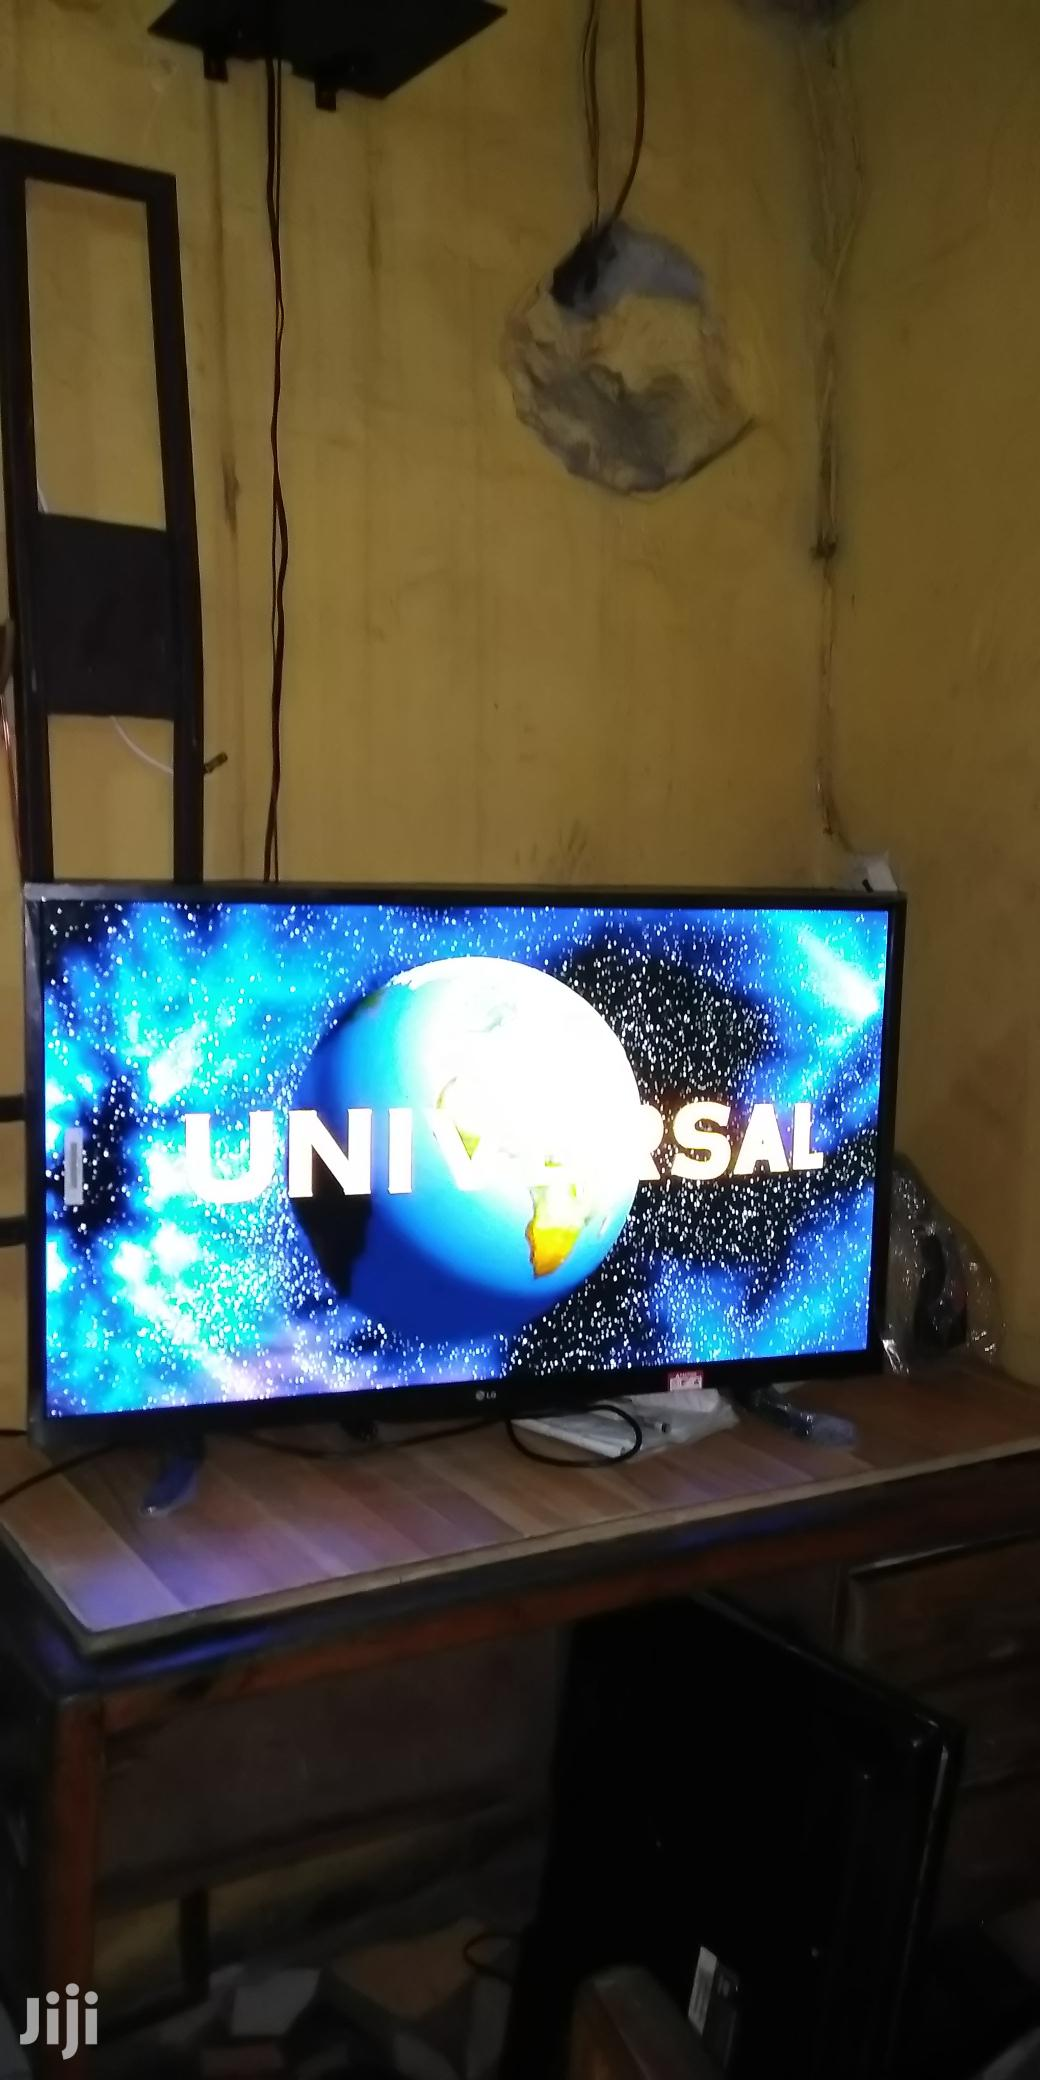 LG LED TV 43 Inches | TV & DVD Equipment for sale in Port-Harcourt, Rivers State, Nigeria